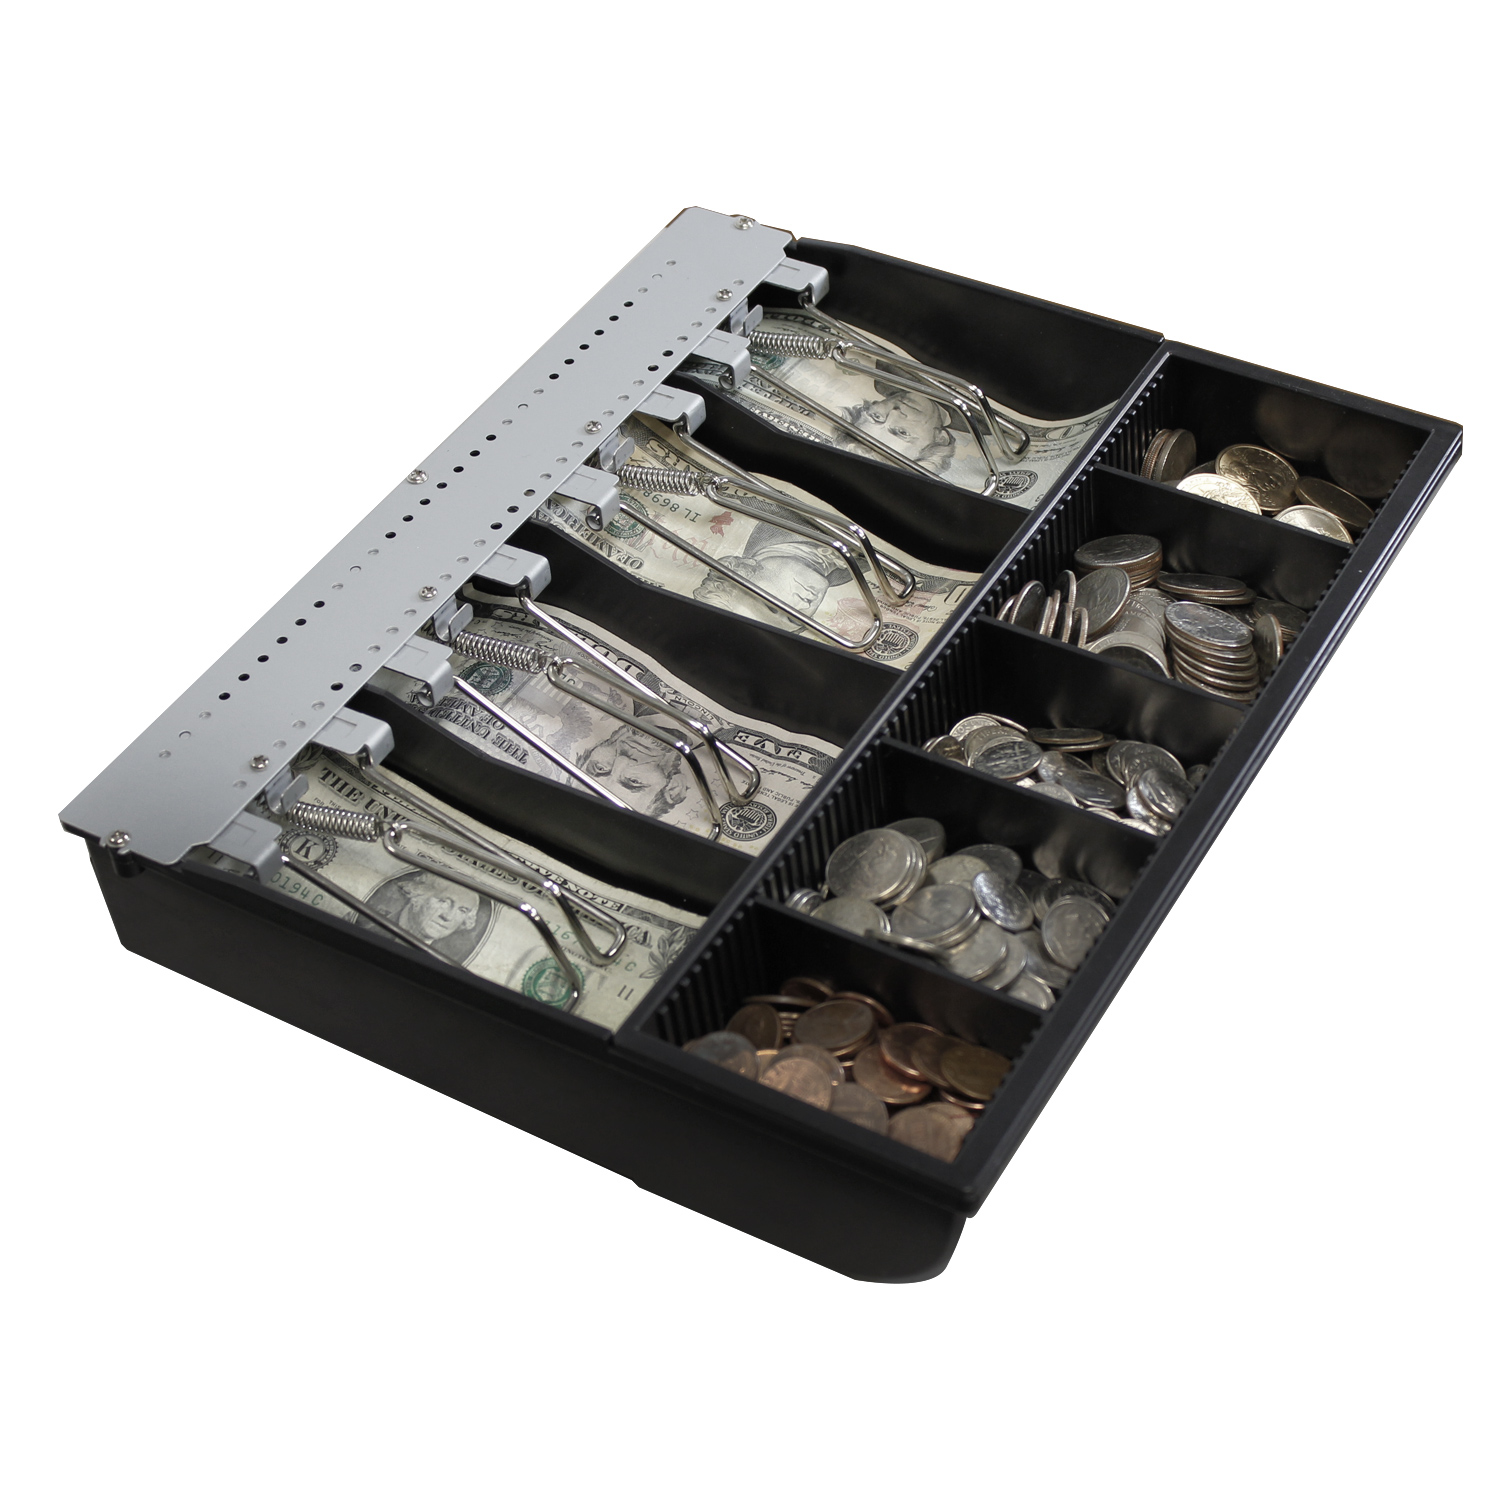 Pos Cash Drawer Tray Adesso Inc Your Input Device Specialist